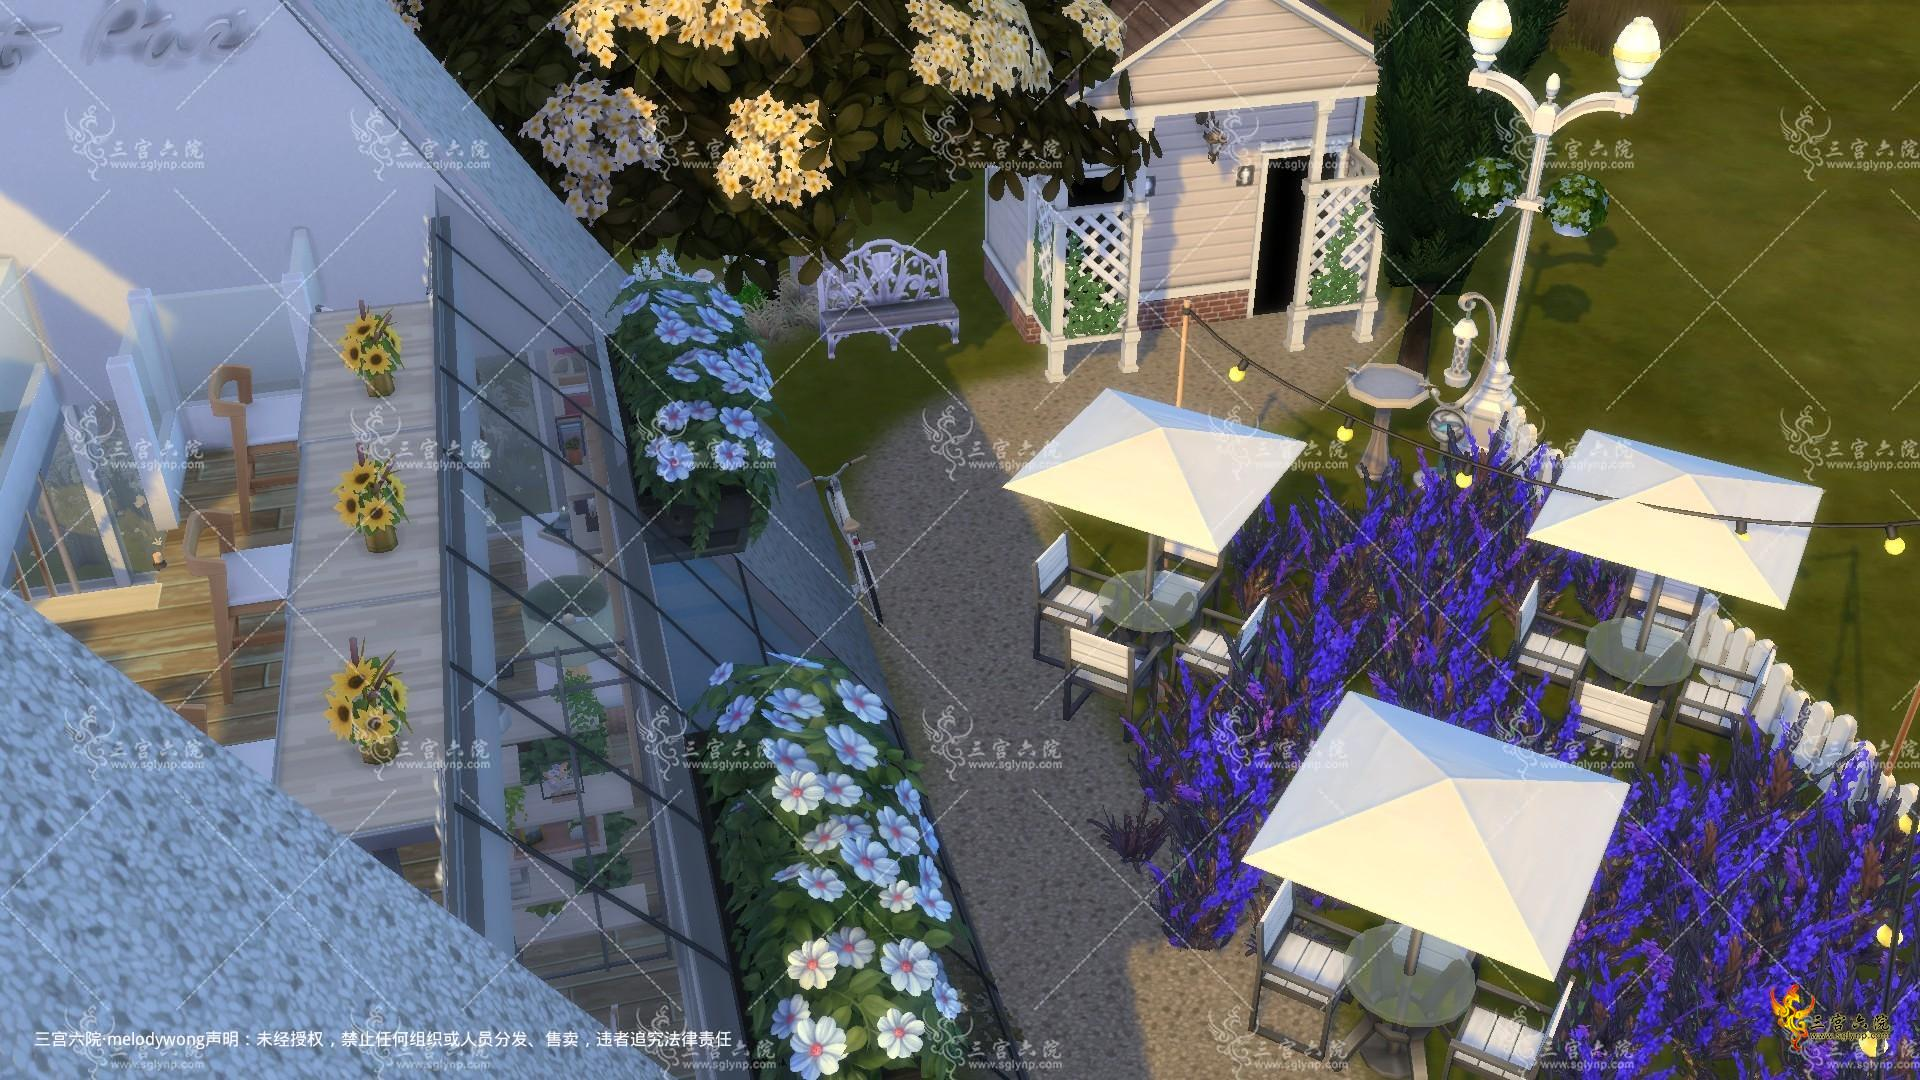 The Sims 4 2021_8_26 下午 03_10_57.png